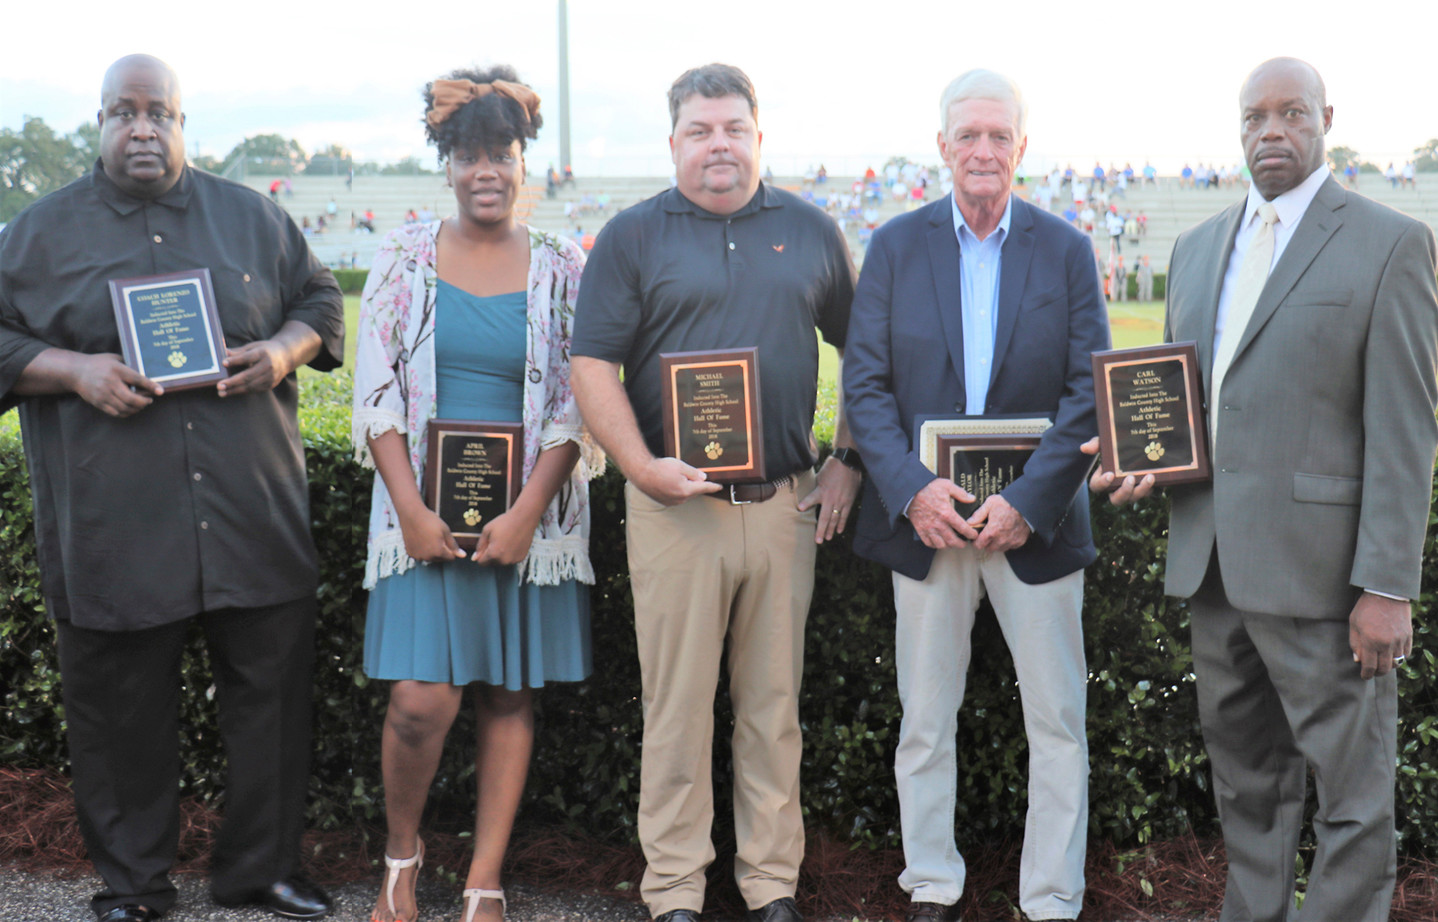 The newest members of the Baldwin County High School Athletic Hall of Fame include, from left, Coach Lorenzo Hunter (Associate), April Brown (2002), Michael Smith (1996), Donald Taylor (1968); Carl Watson (1974); and, not pictured, Kelly Godbey Morris (1999).